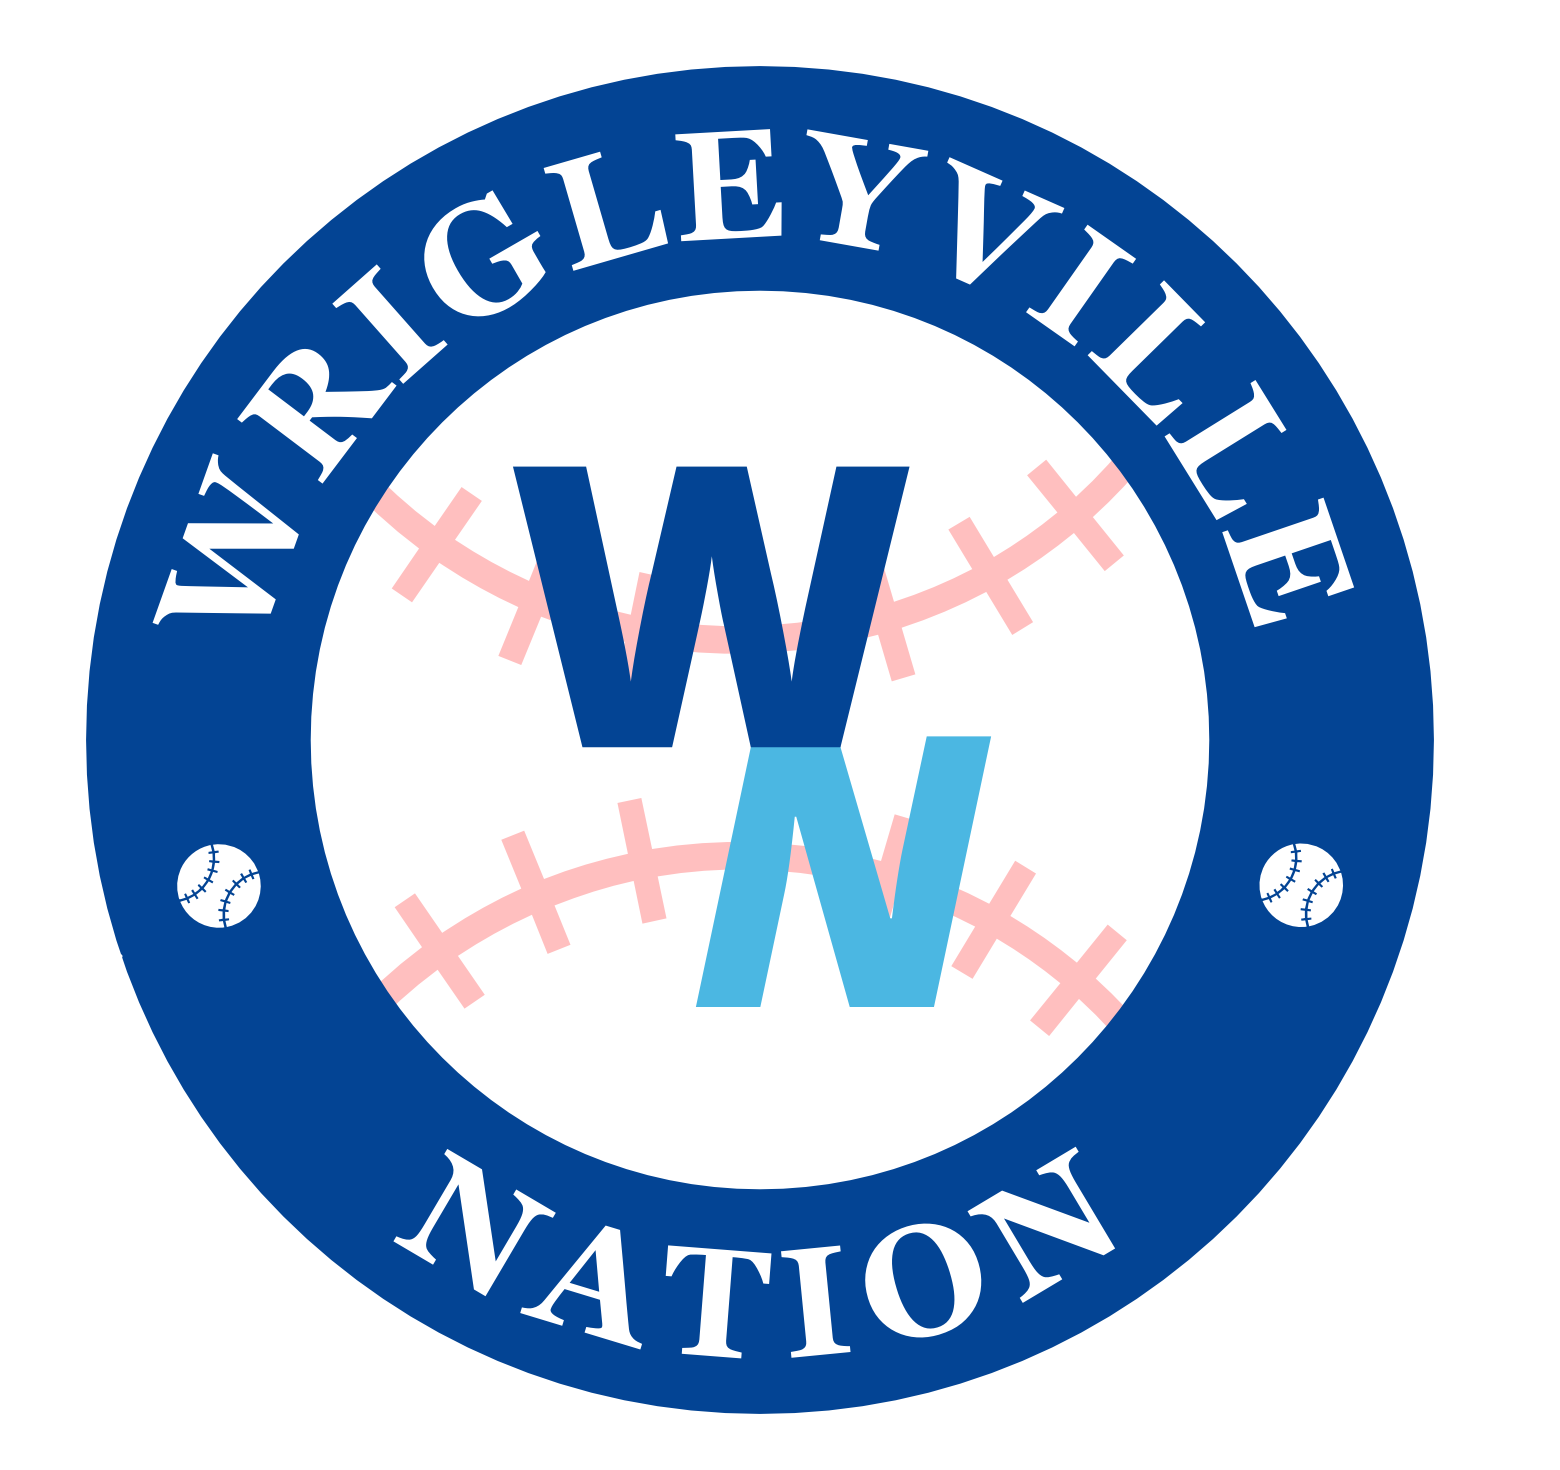 Wrigleyville Nation Ep 211 - Guest: Tom Loxas, Tough Cubs Week, Baez Out, & More show art